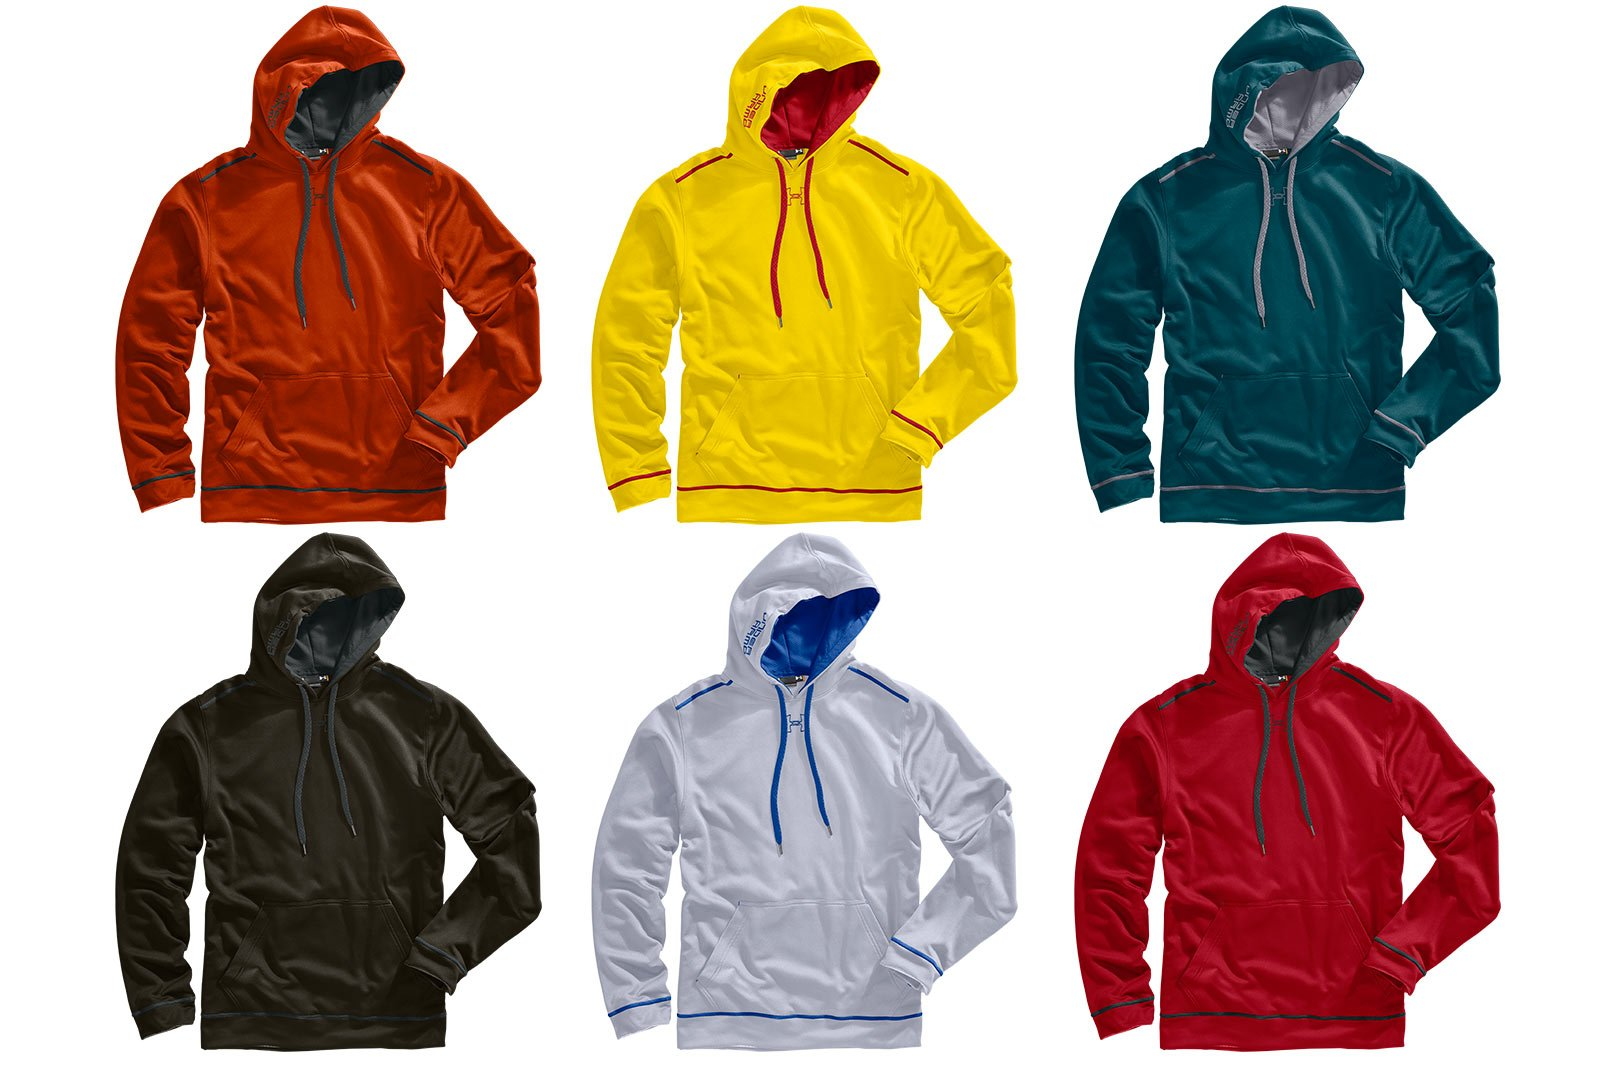 Colorways example - six hoodies with a range of colors alternates